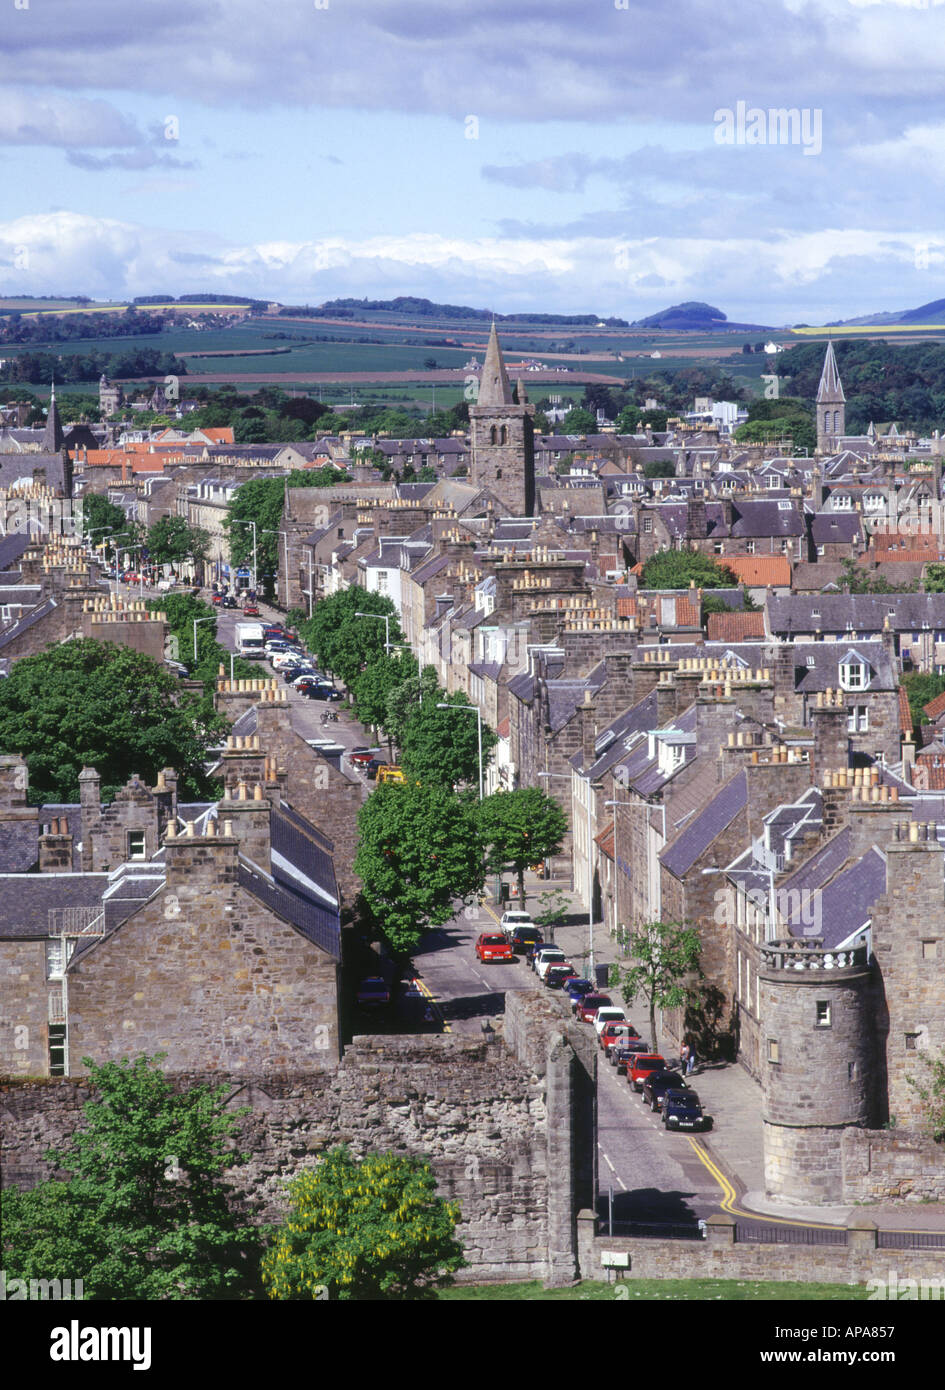 dh South Street fifeshire ST ANDREWS FIFE SCOTLAND The Pends towns view town centre Stock Photo